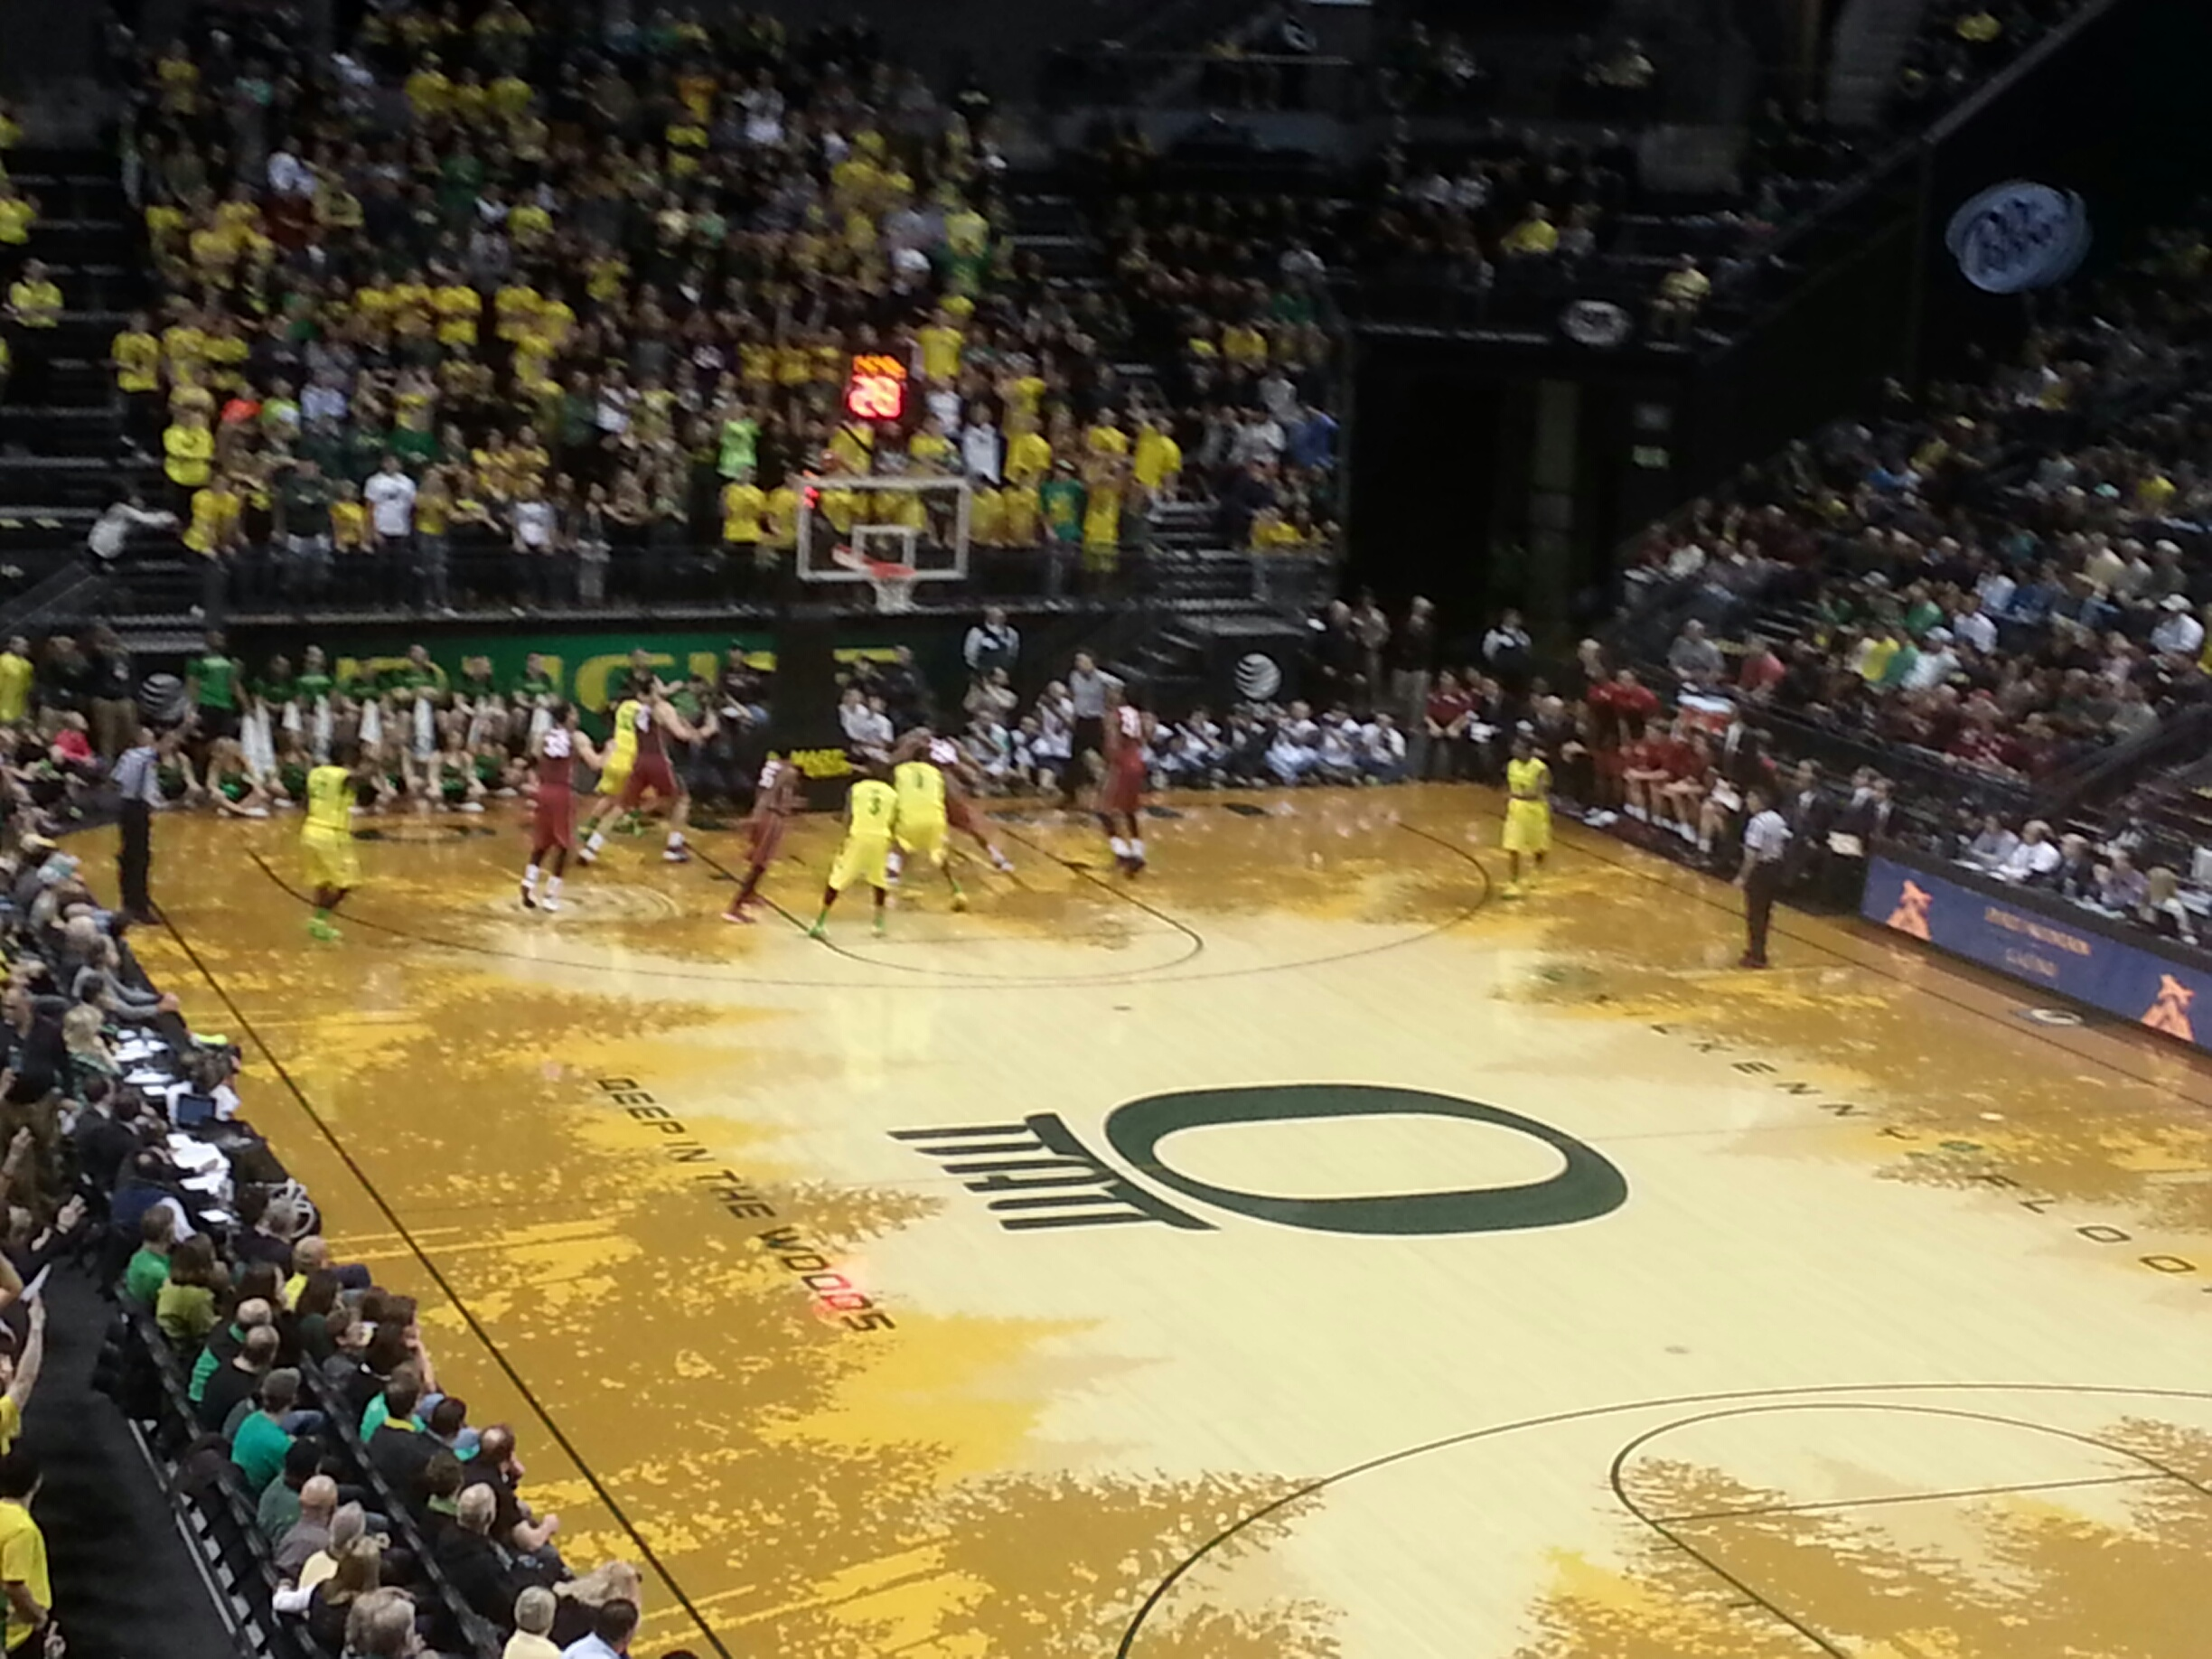 Oregon Basketball Recruiting: Ducks Get Commit from 4-Star ...